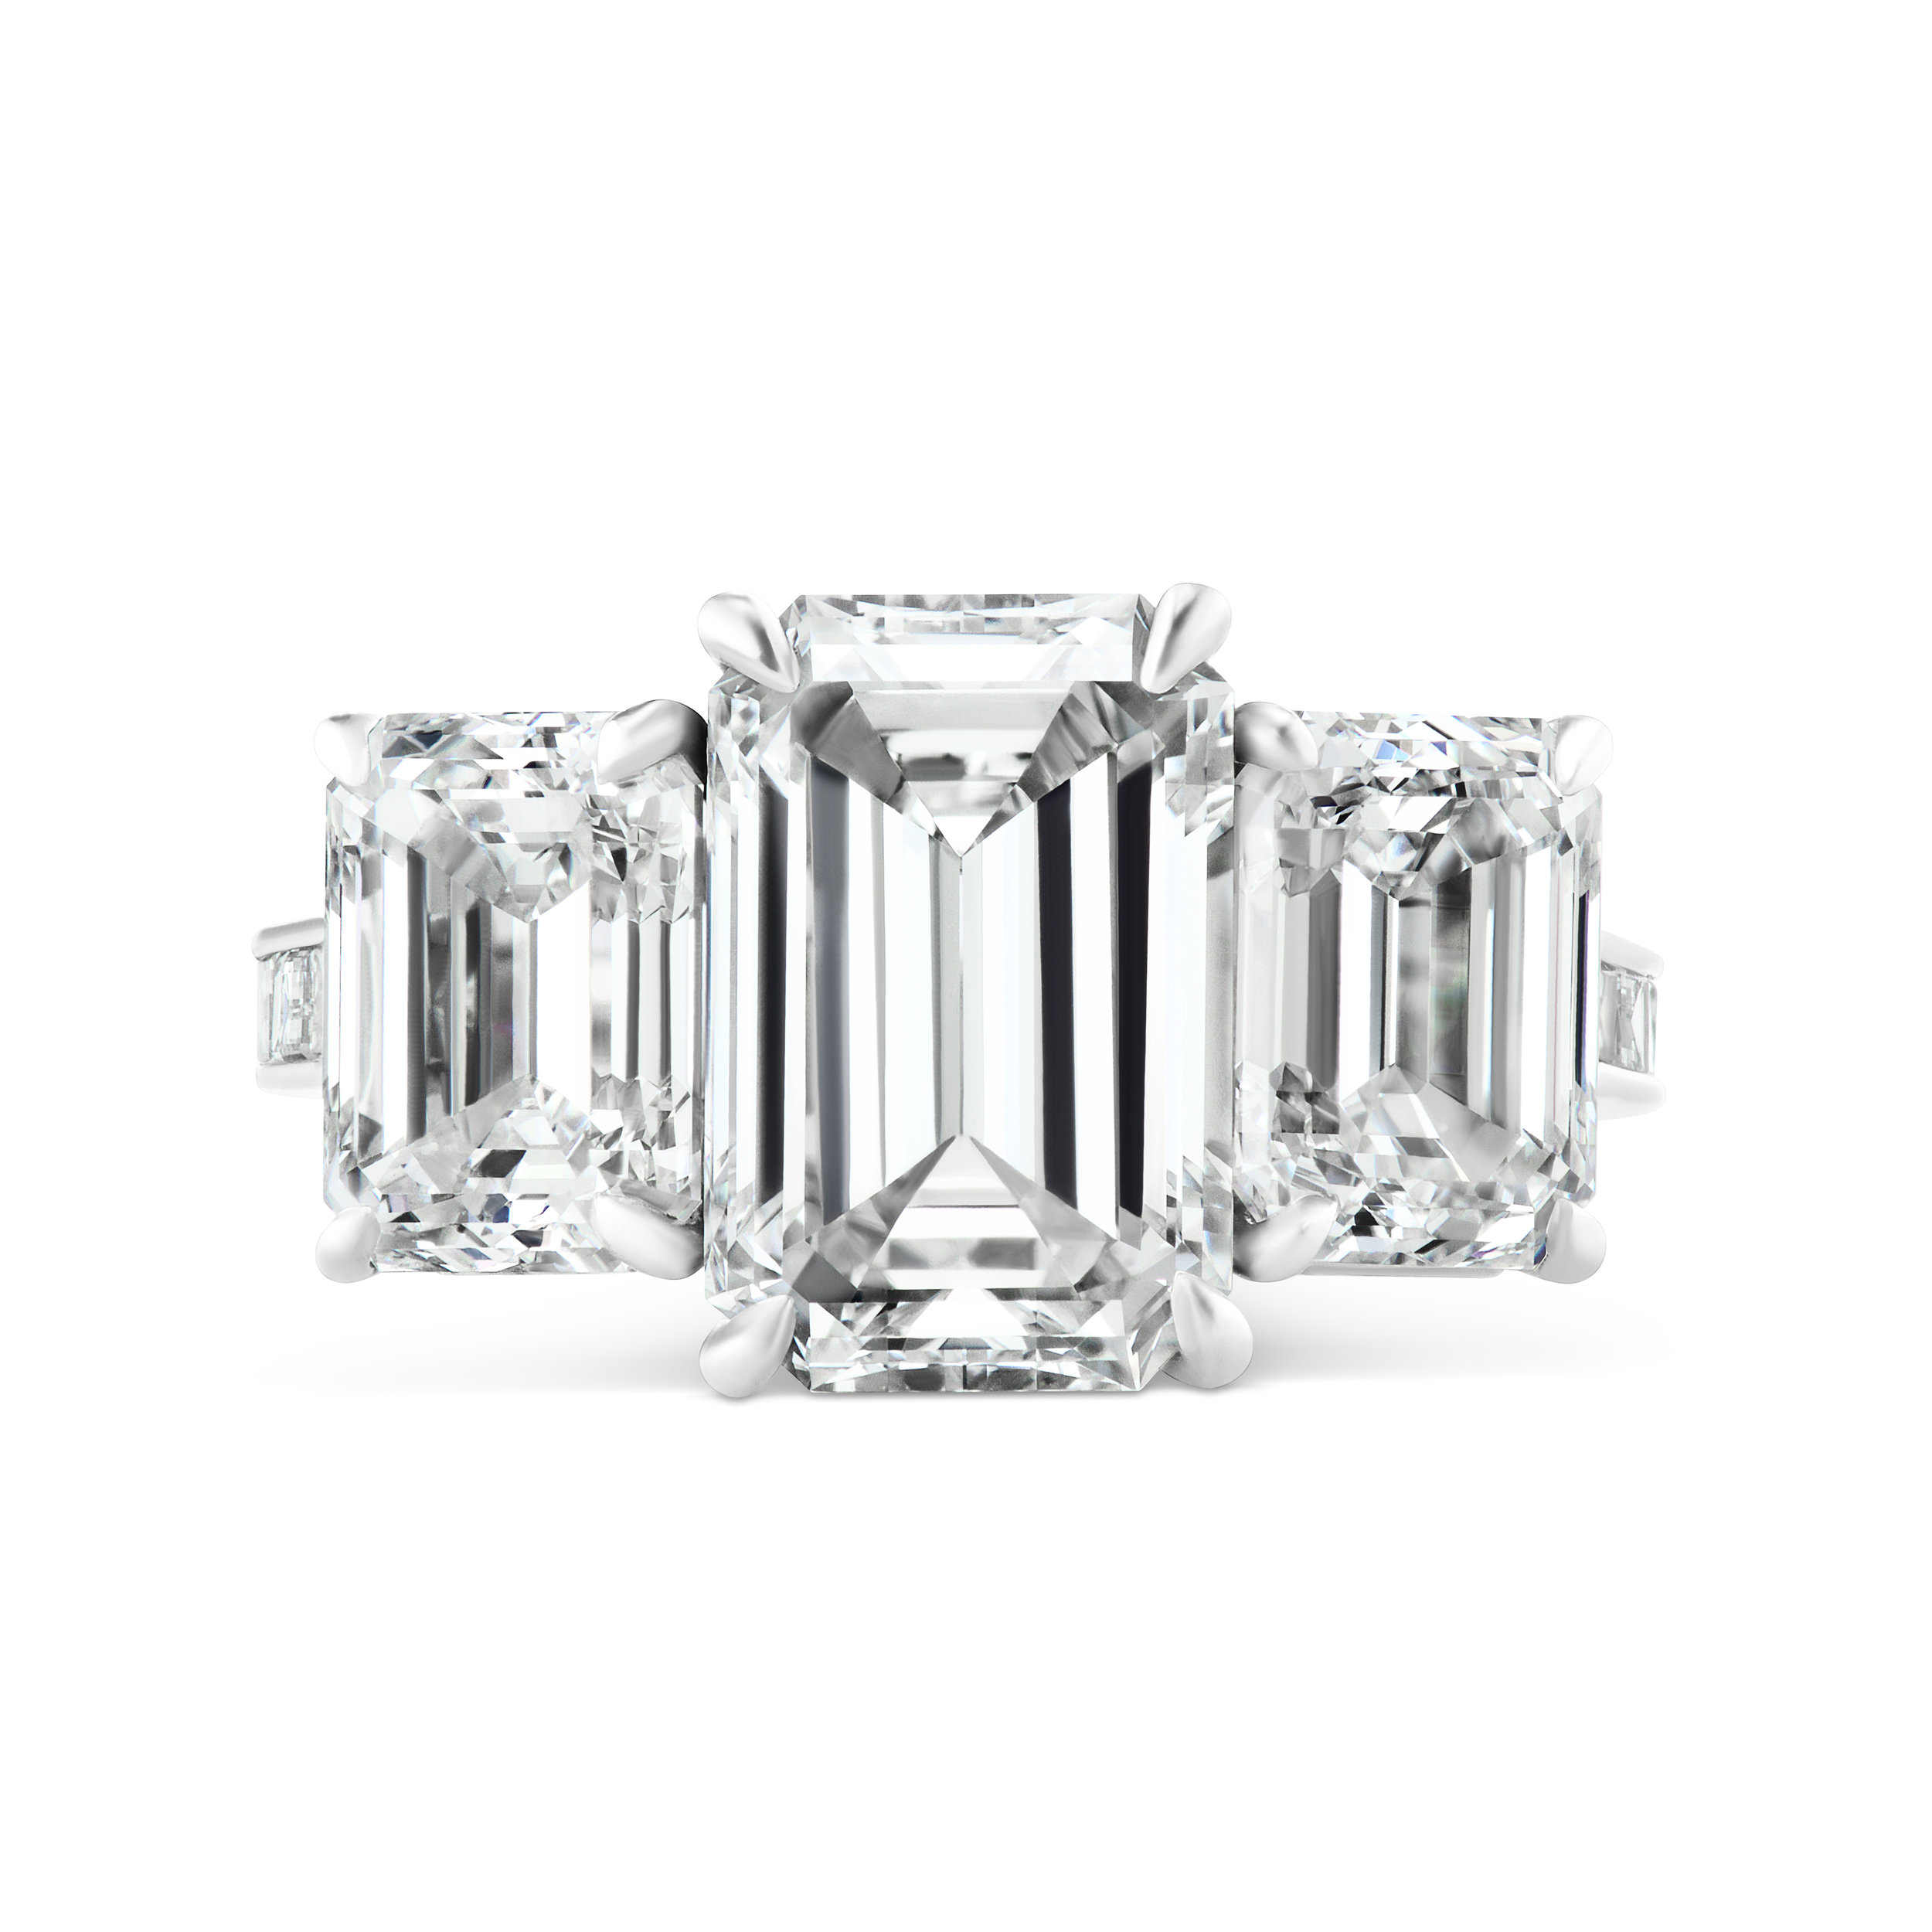 Emerald cut diamond ring with emerald cut side stones and diamond baguette band, mounted in platinum.